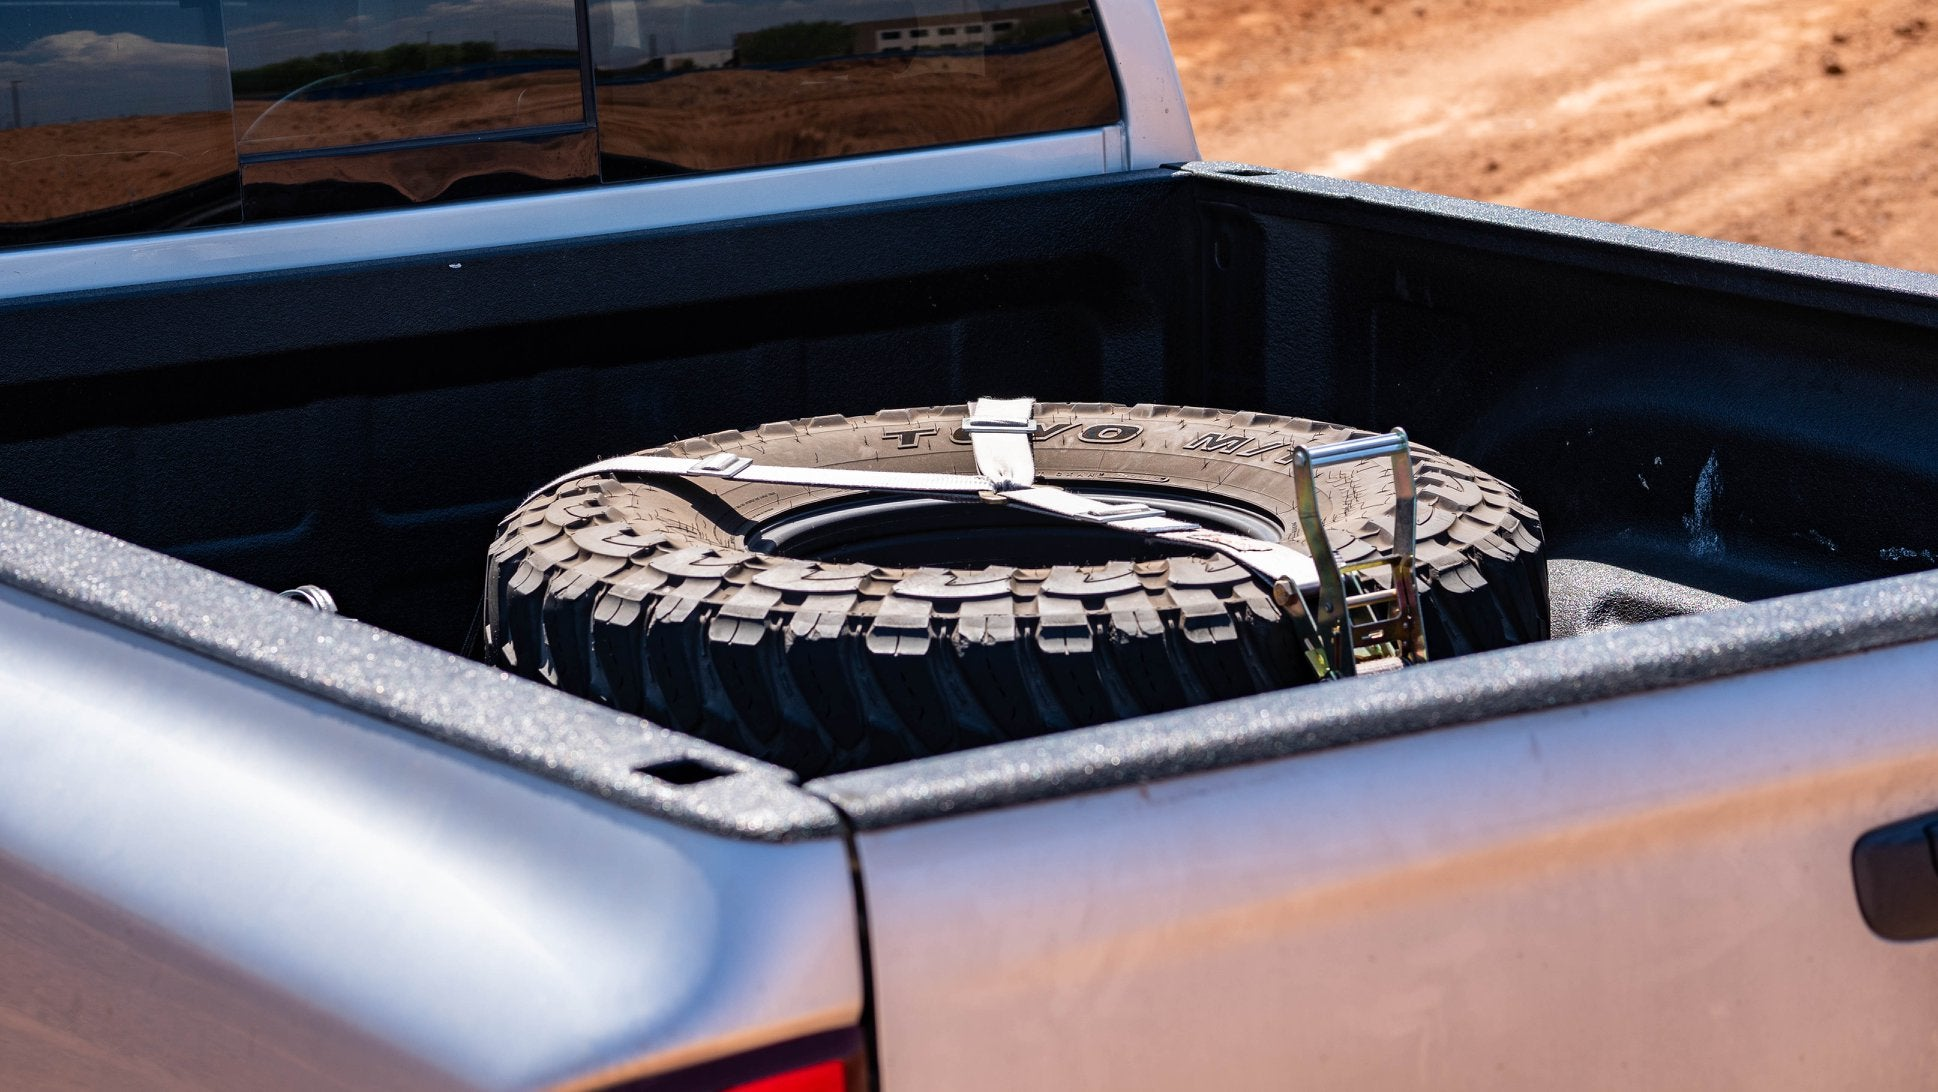 SDHQ Spare Tire Mount In Bed